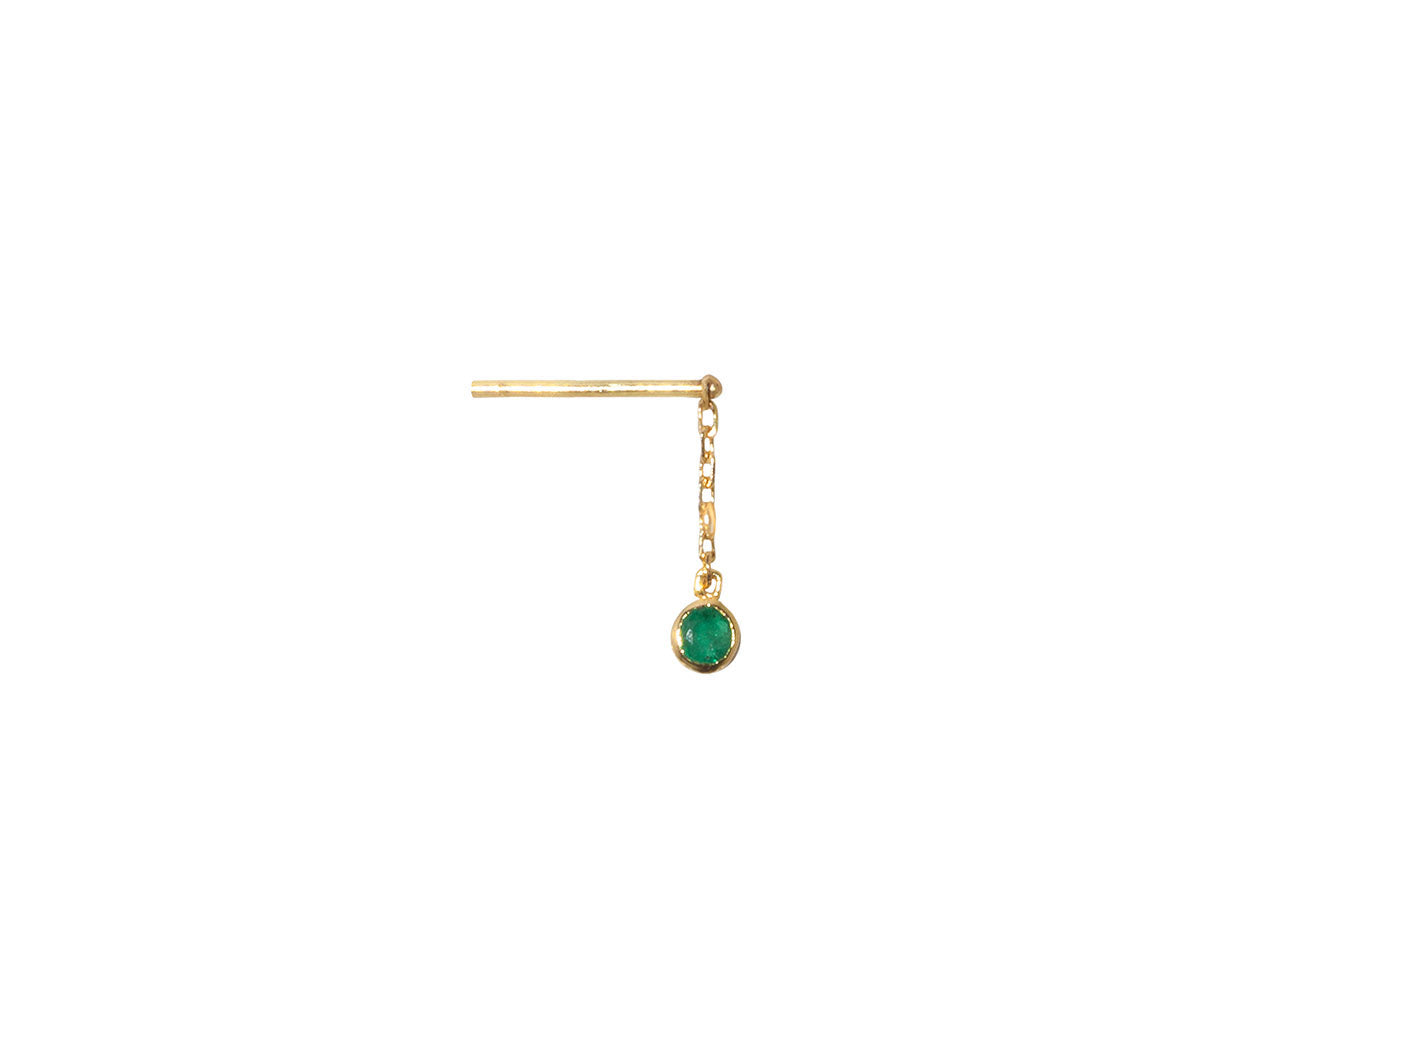 JAMES EMERALD EARRING